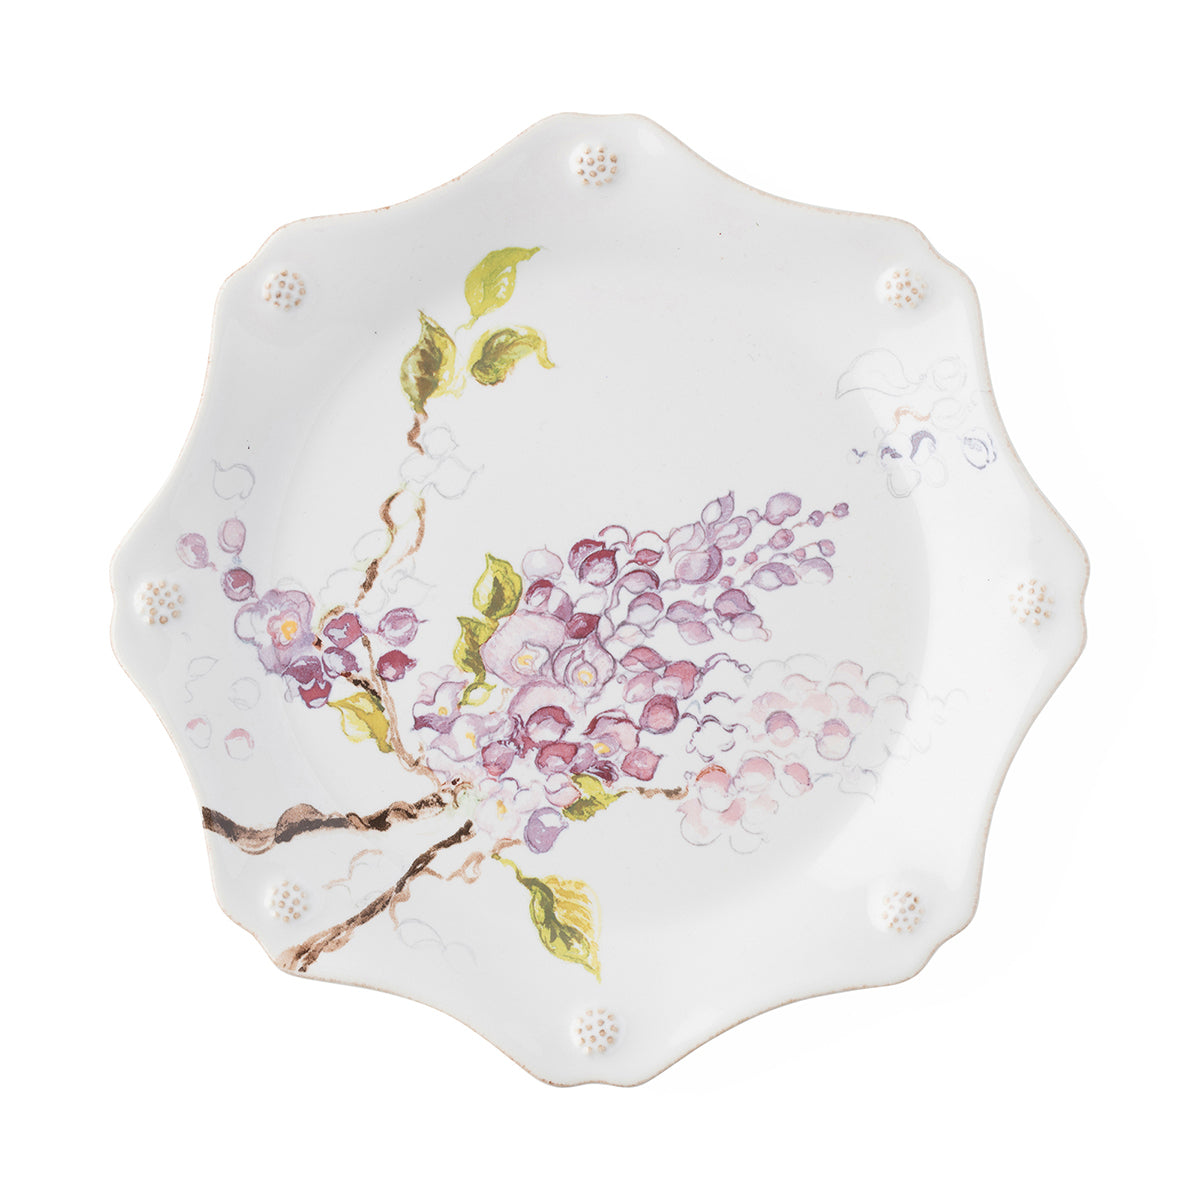 Berry & Thread Floral Sketch Wisteria Dessert/Salad Plate